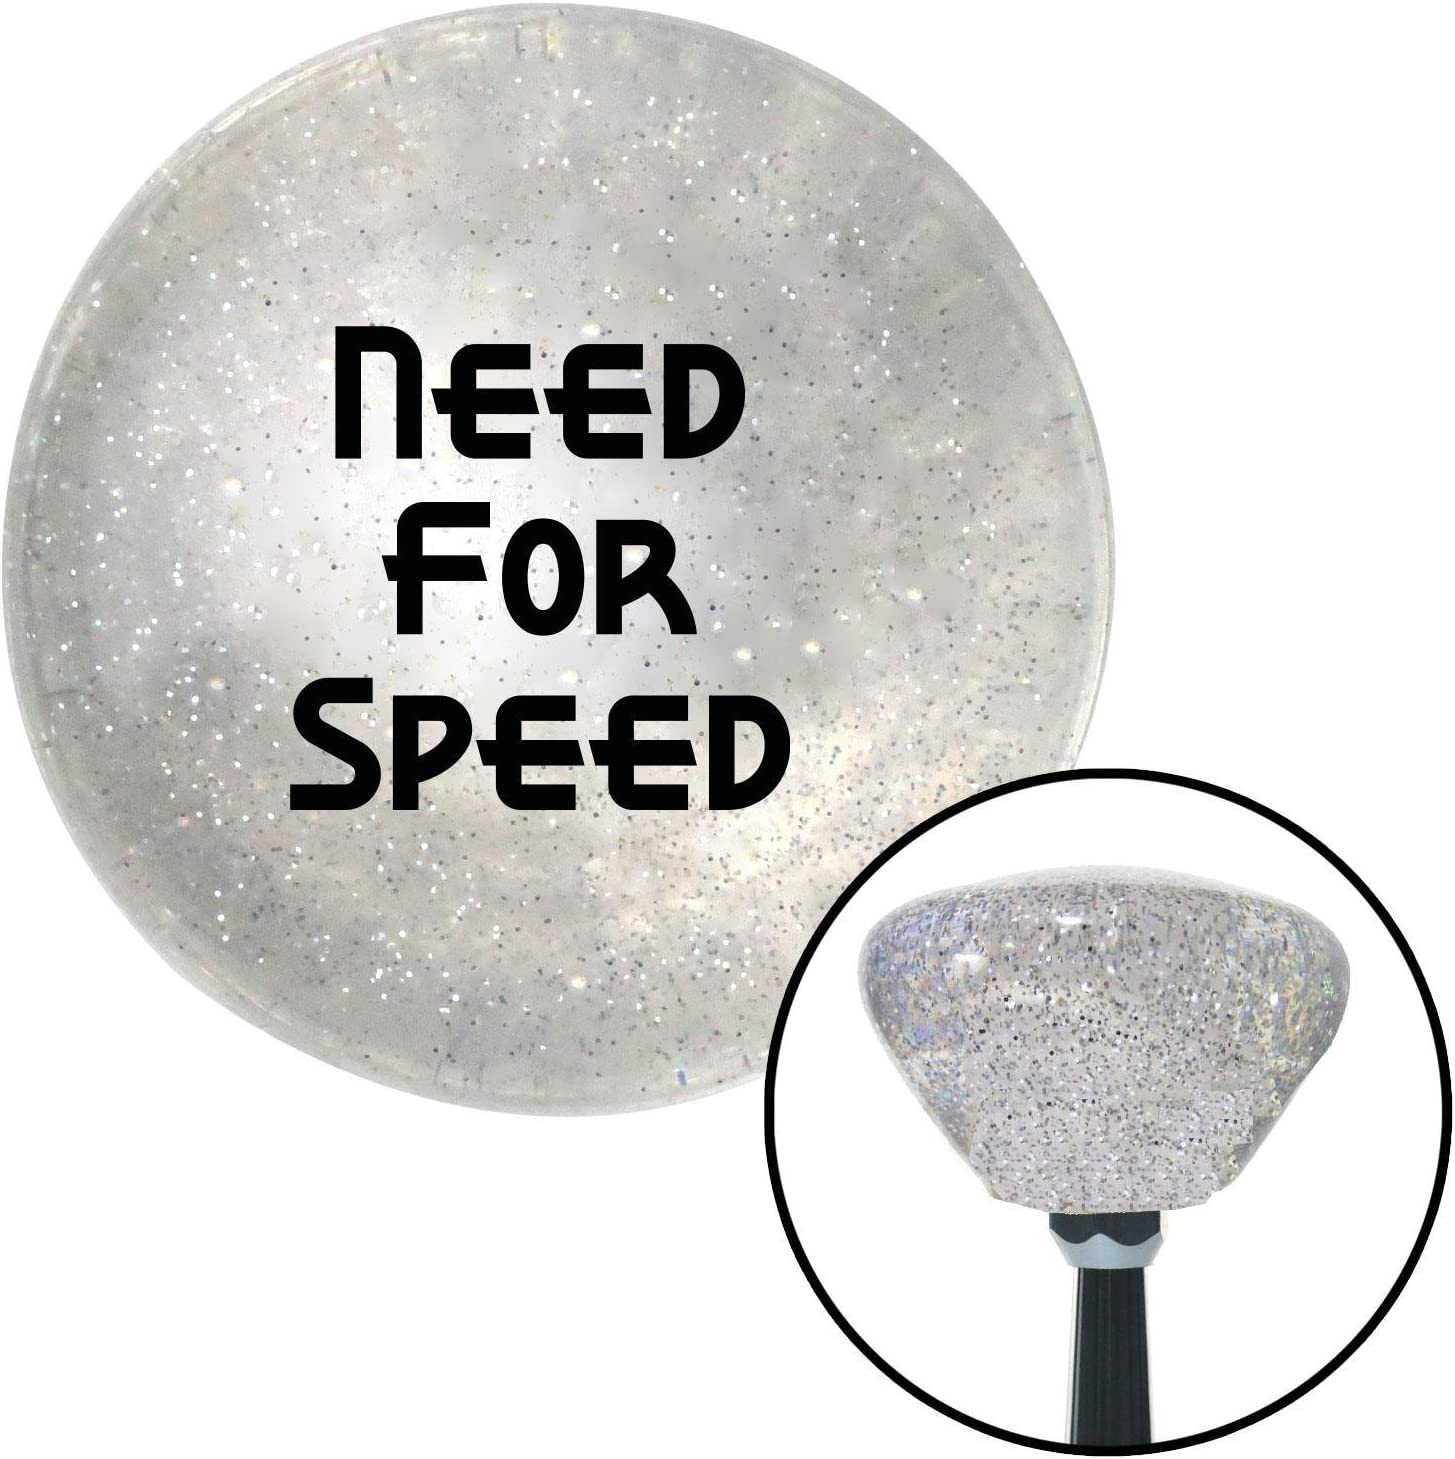 American Shifter 163977 Clear Retro Metal Flake Shift Knob with M16 x 1.5 Insert Black Need for Speed